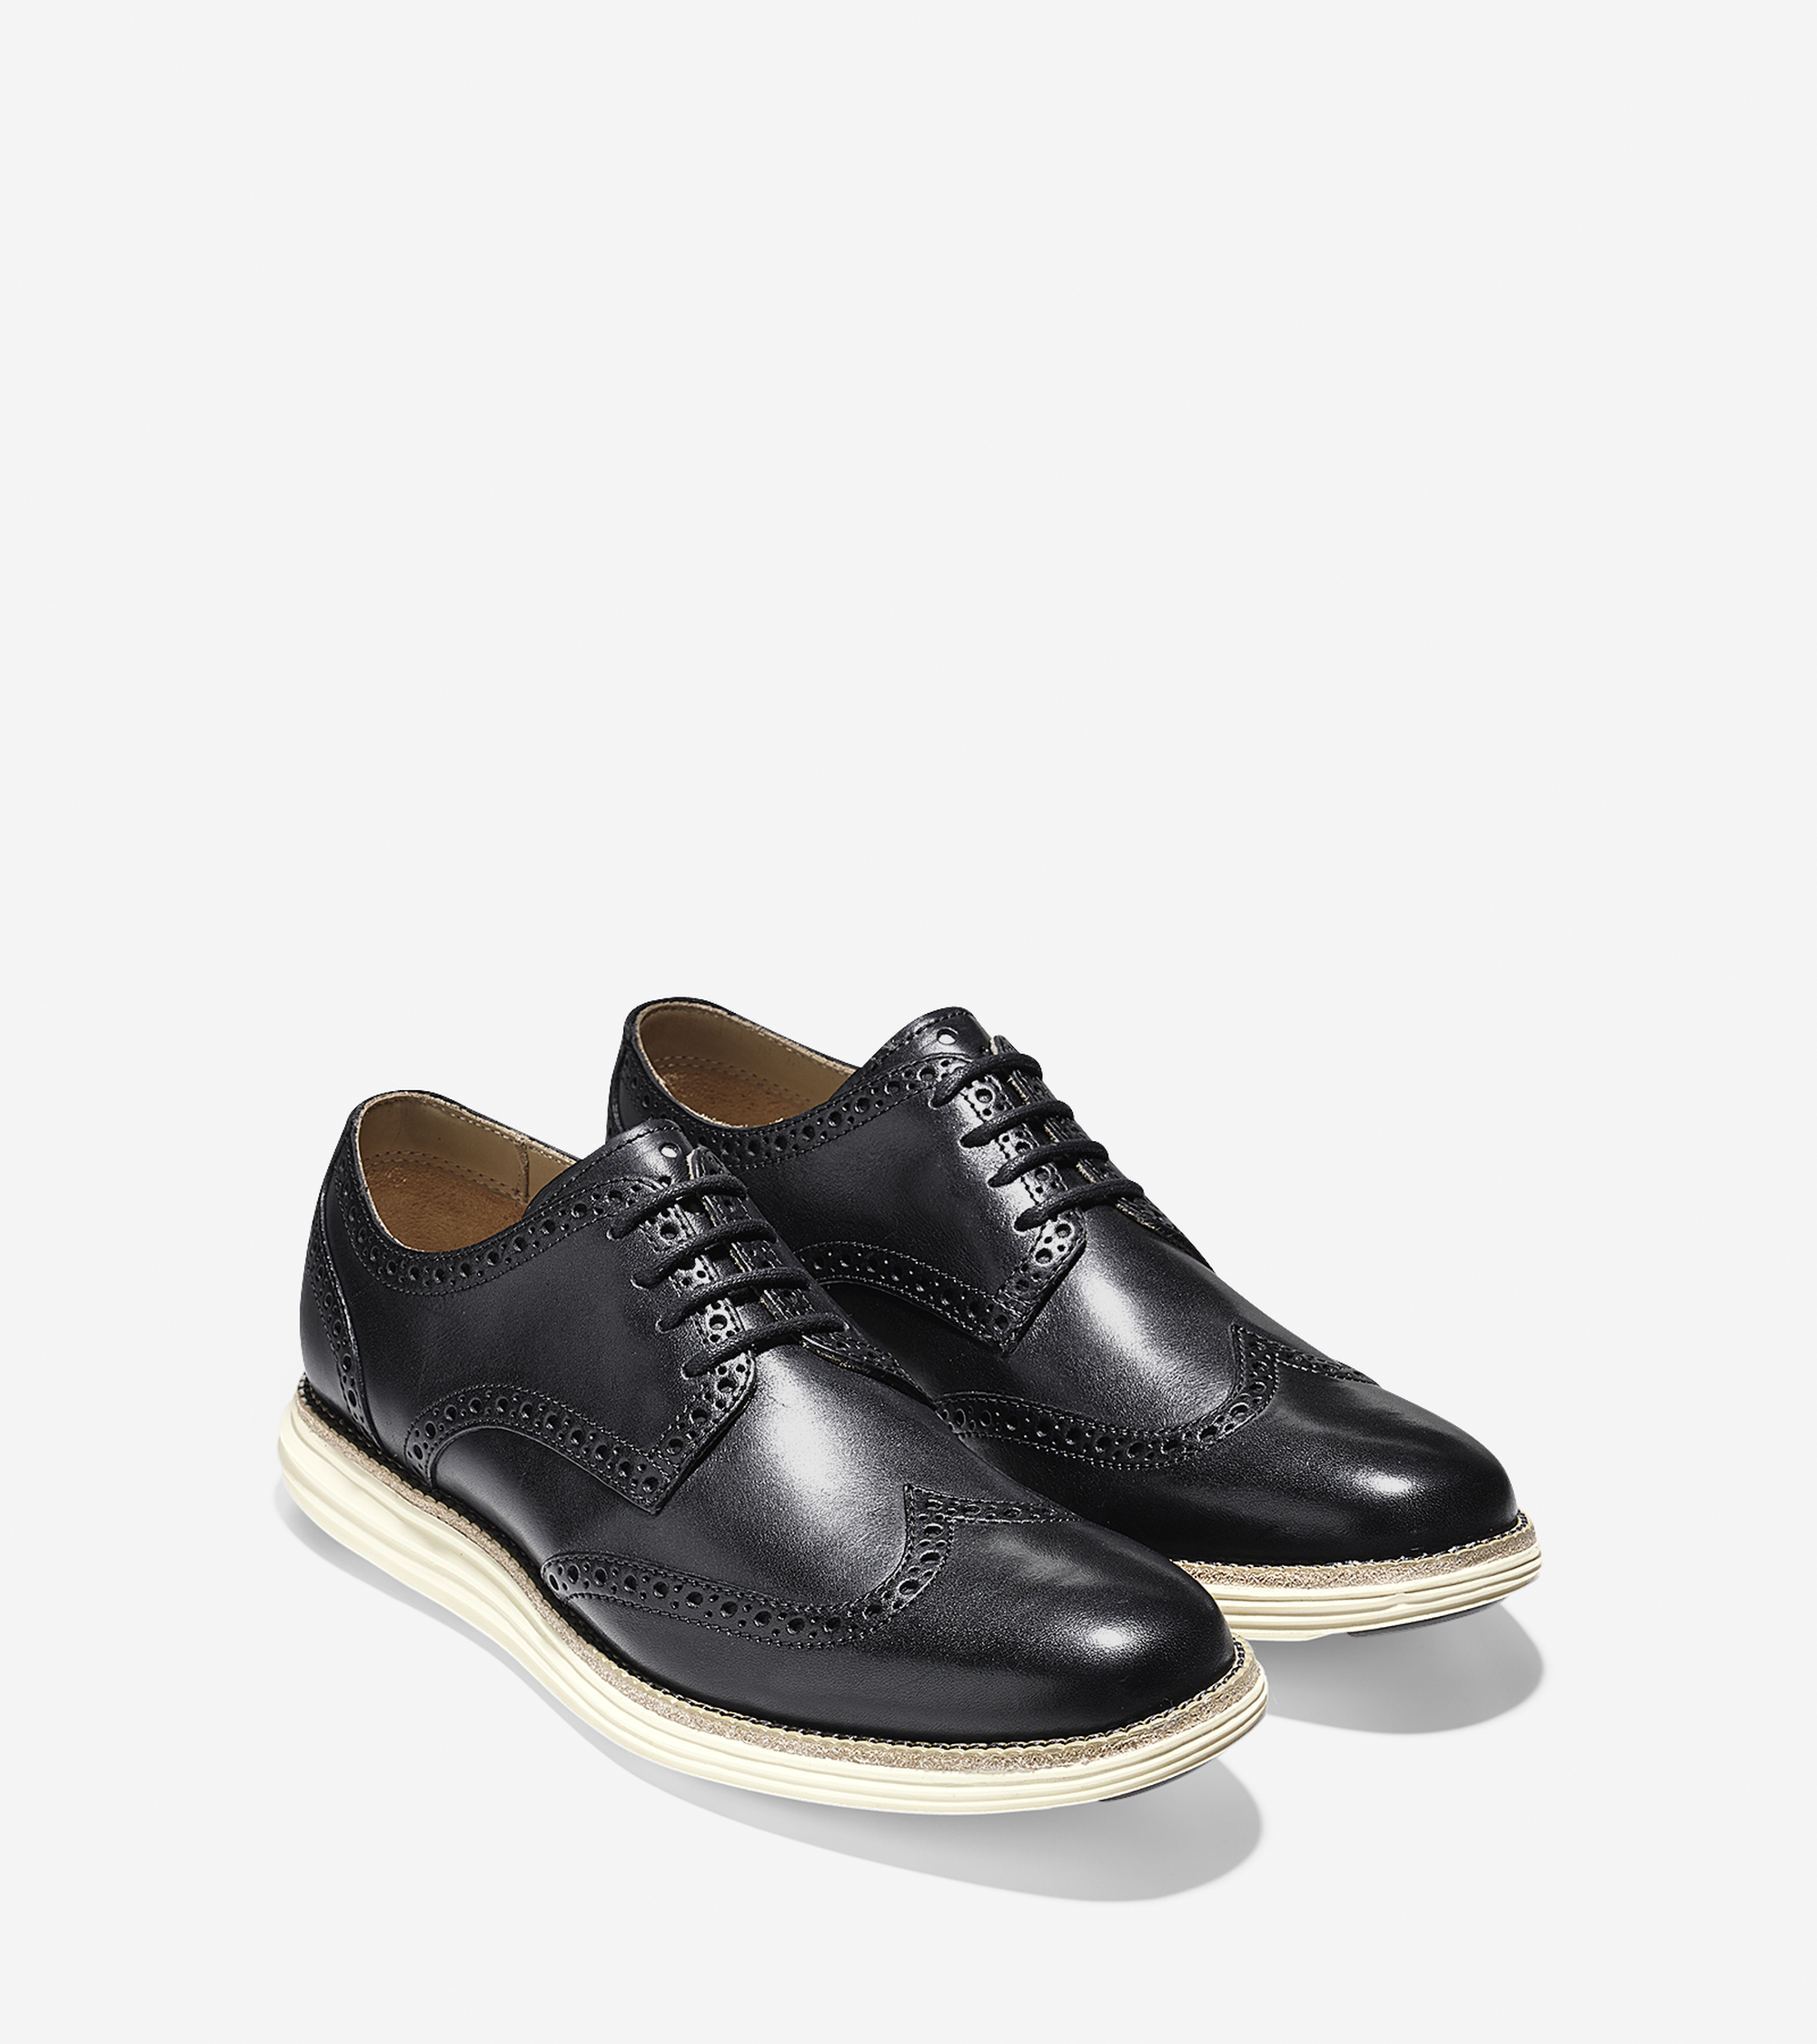 Cole Haan Wingtip Shoes Womens